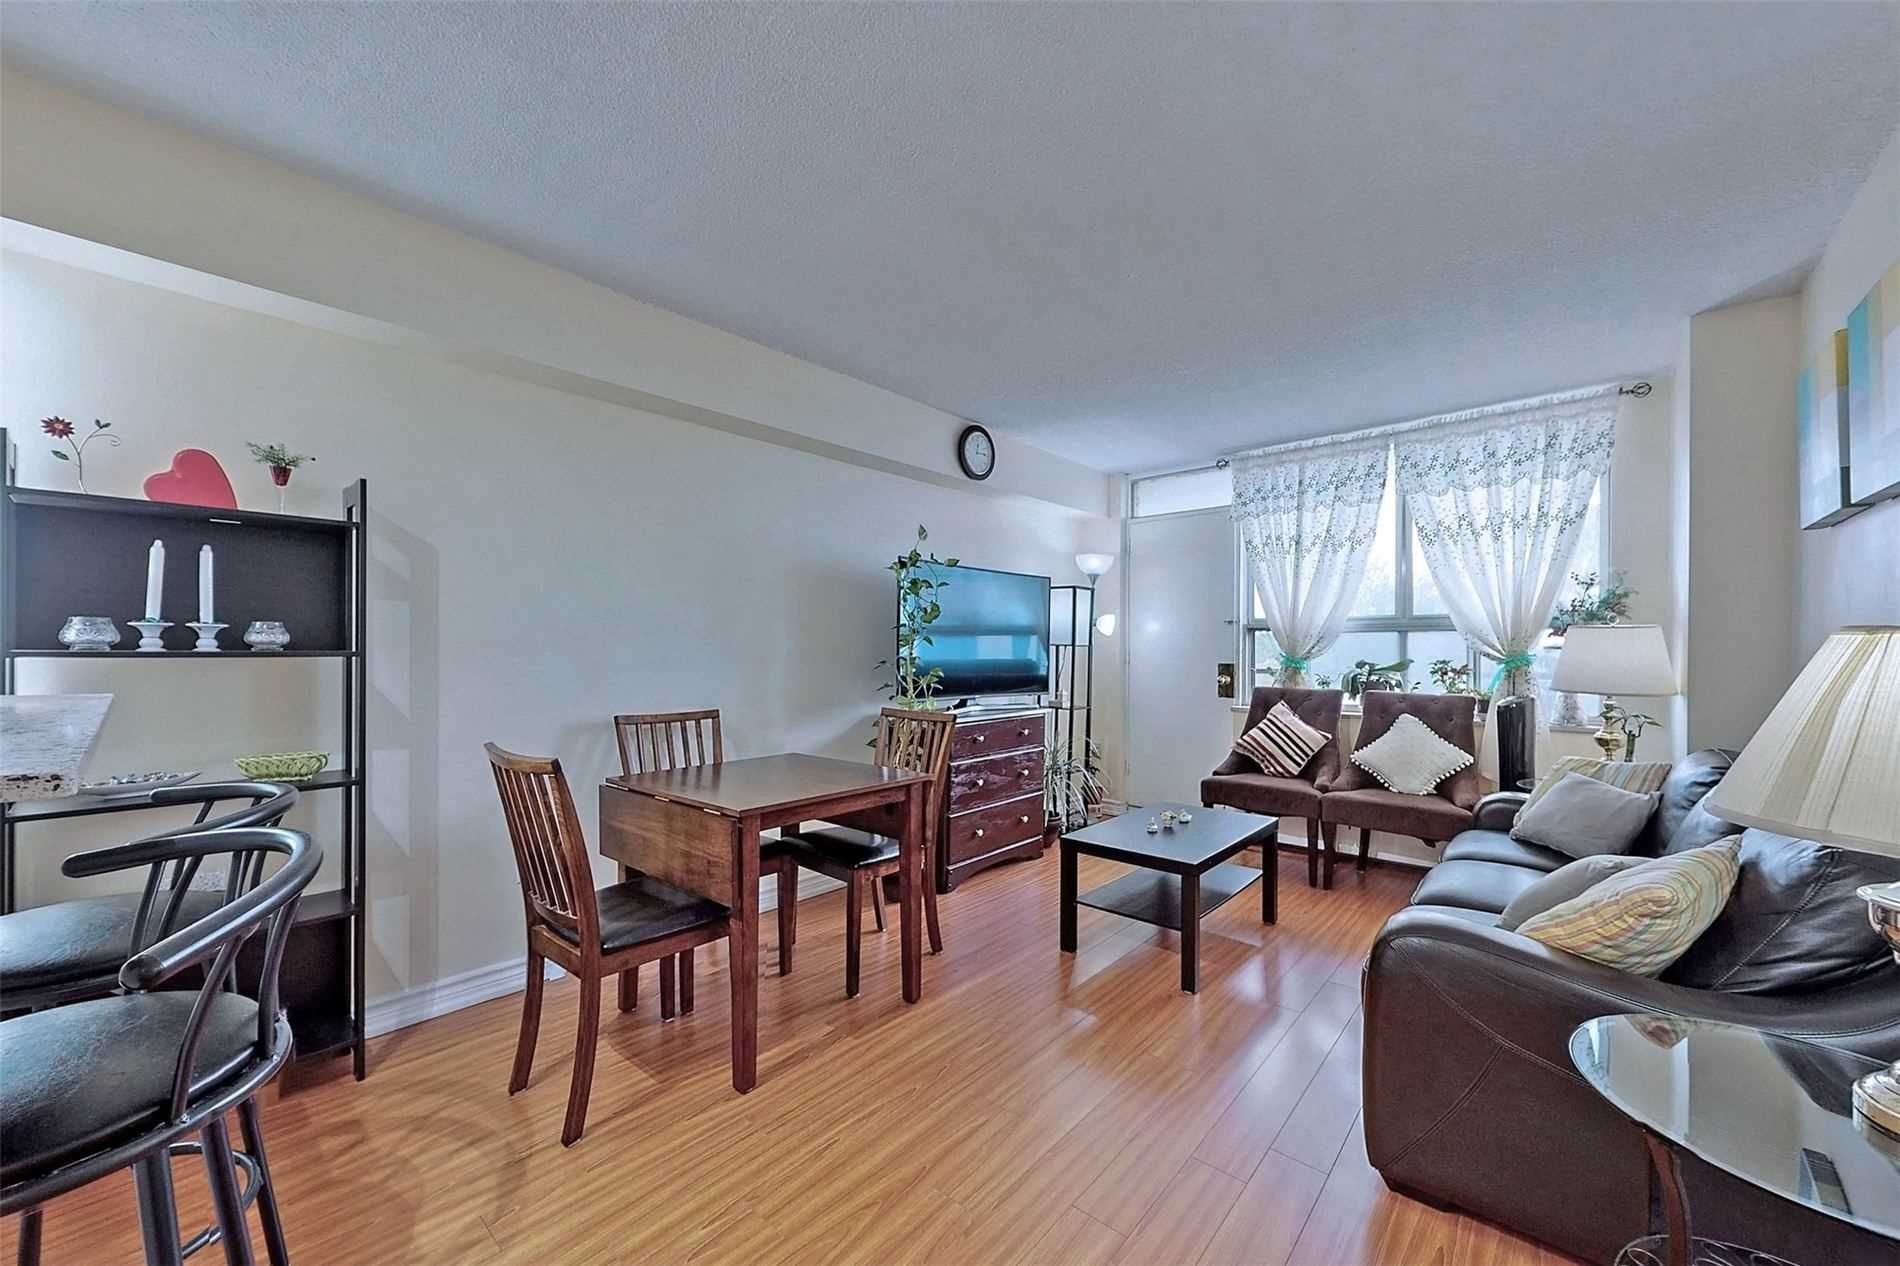 940 Caledonia Rd, unit 511 for sale in Toronto - image #1